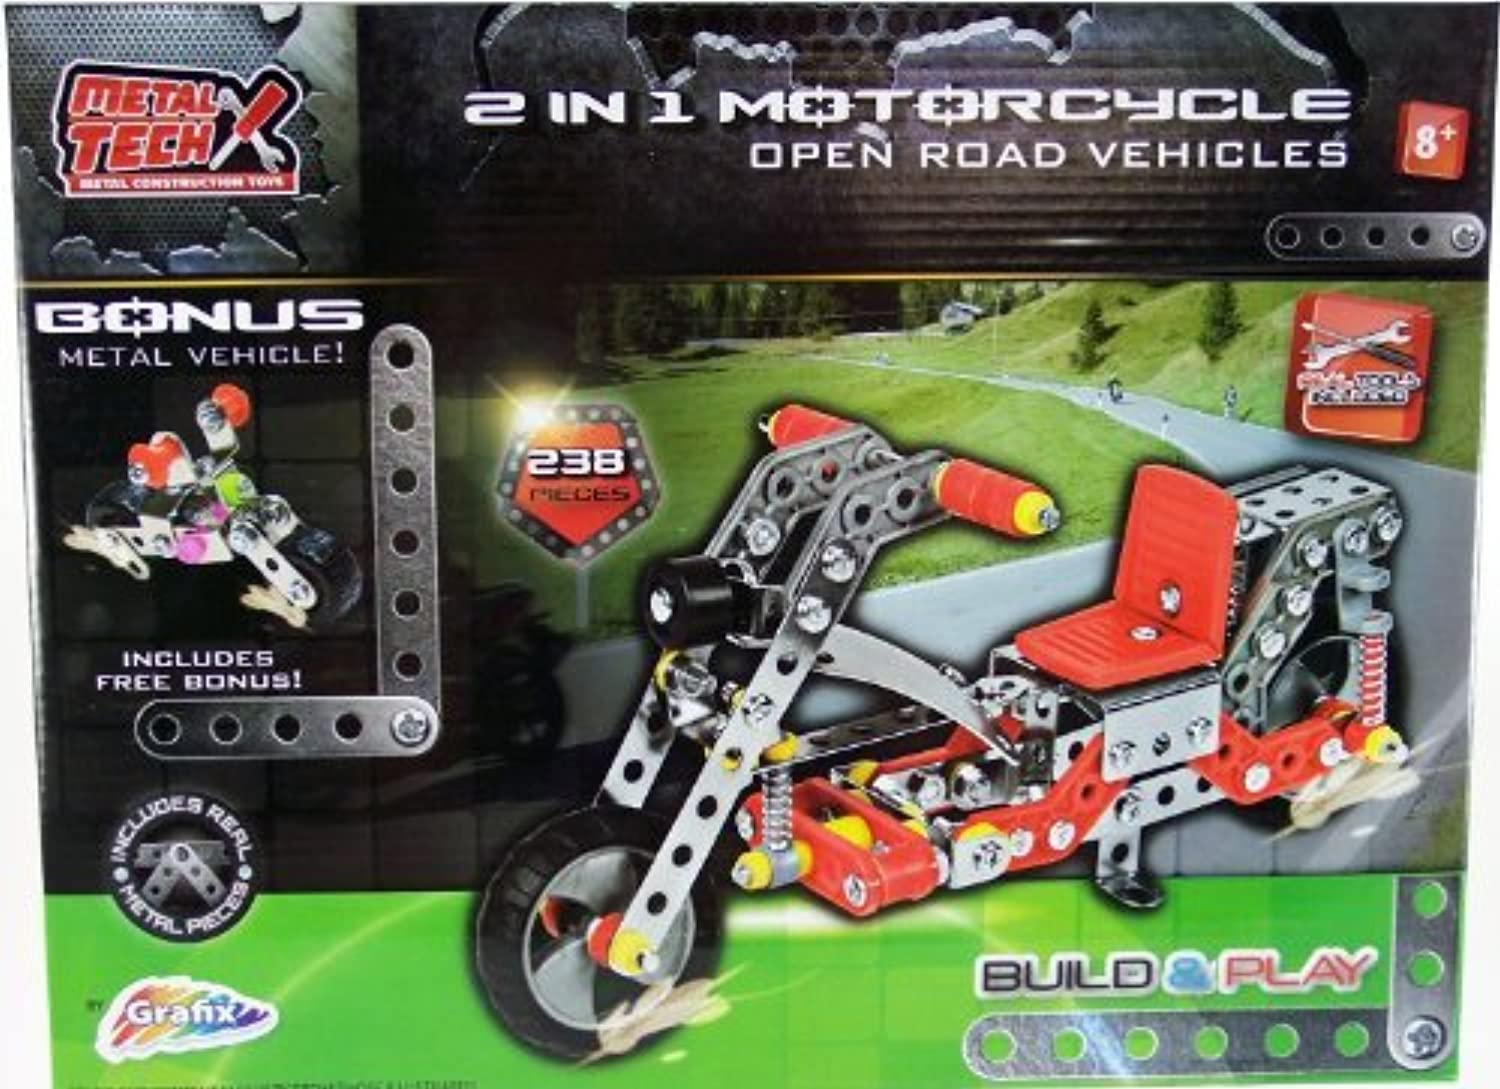 Metal Tech Construction Toys 195 Piece Motorcycle by Metaltech